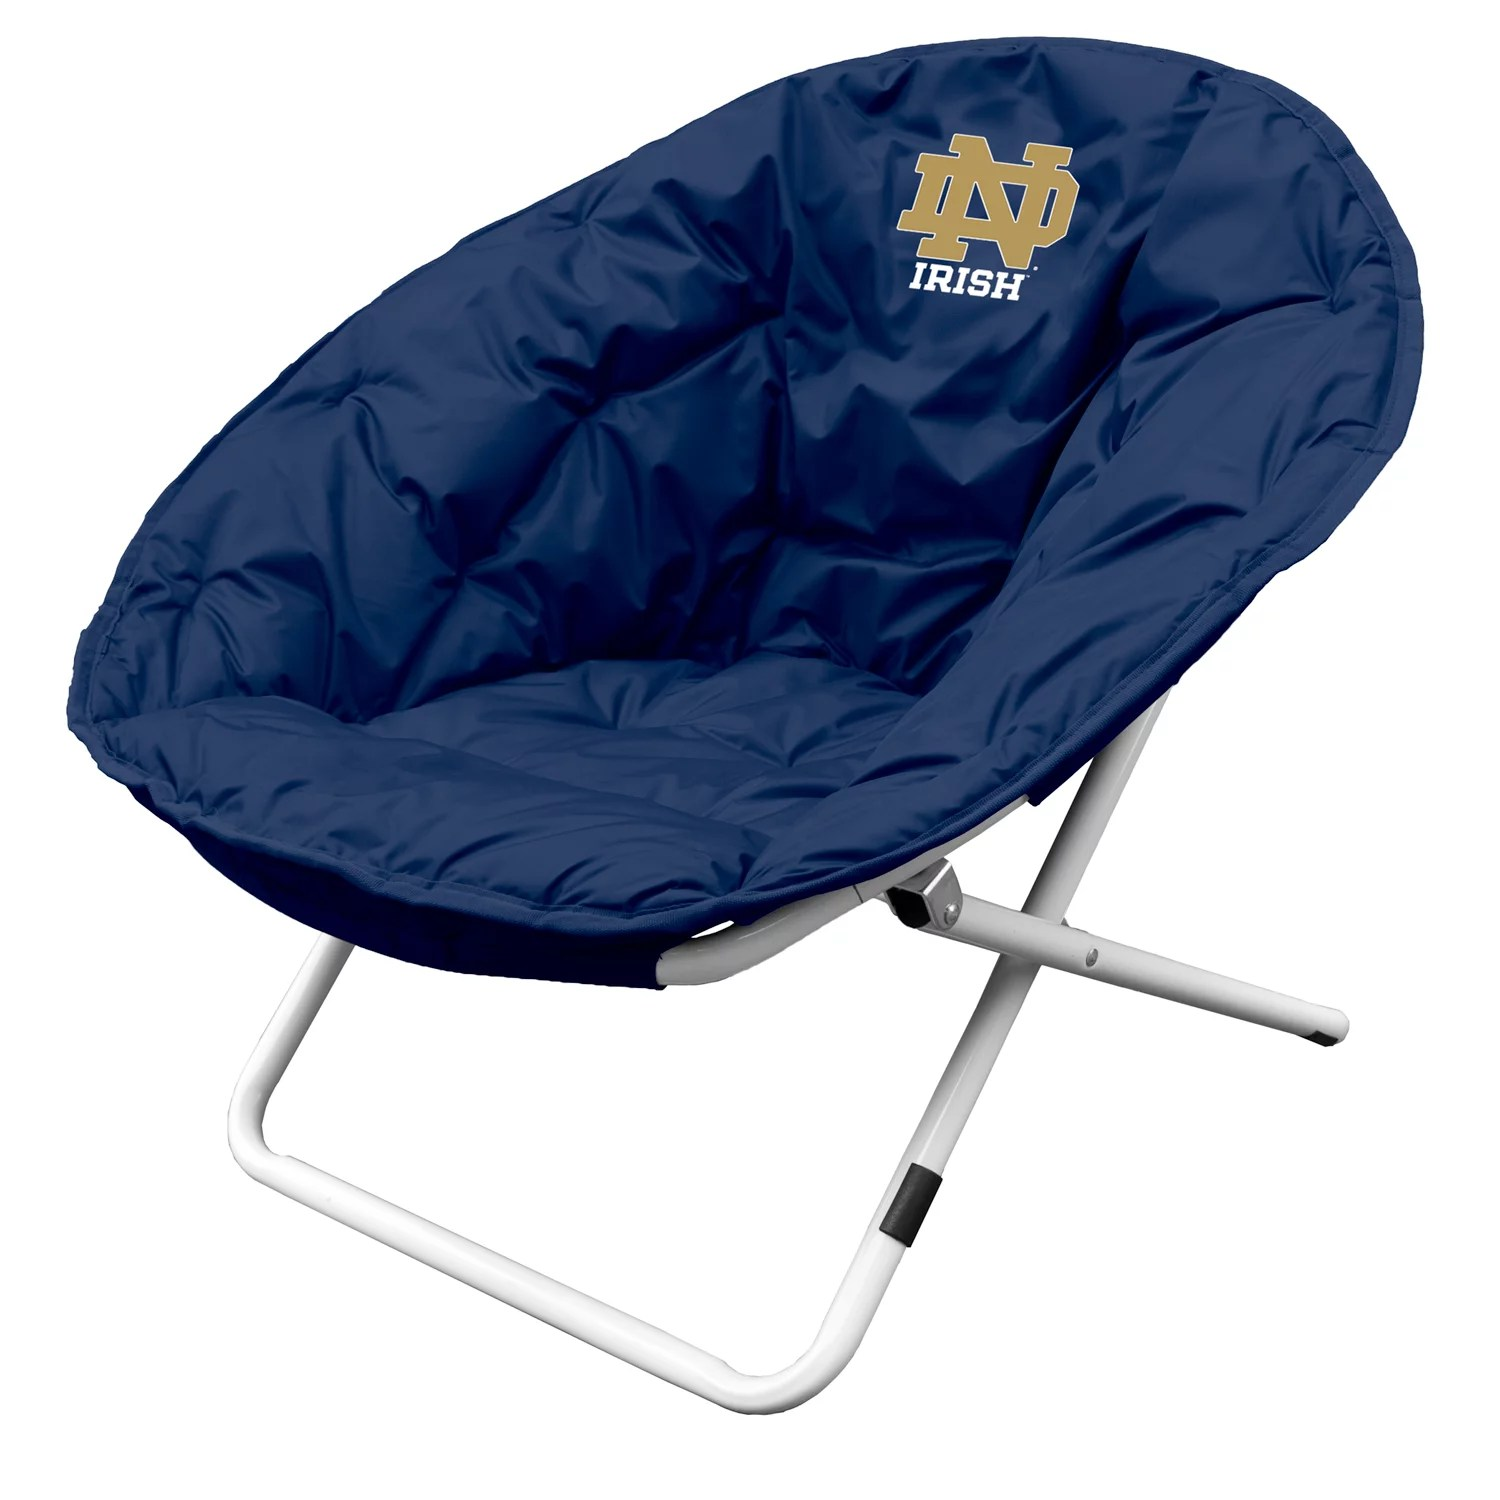 notre dame chair pillow for back pain fighting irish sphere